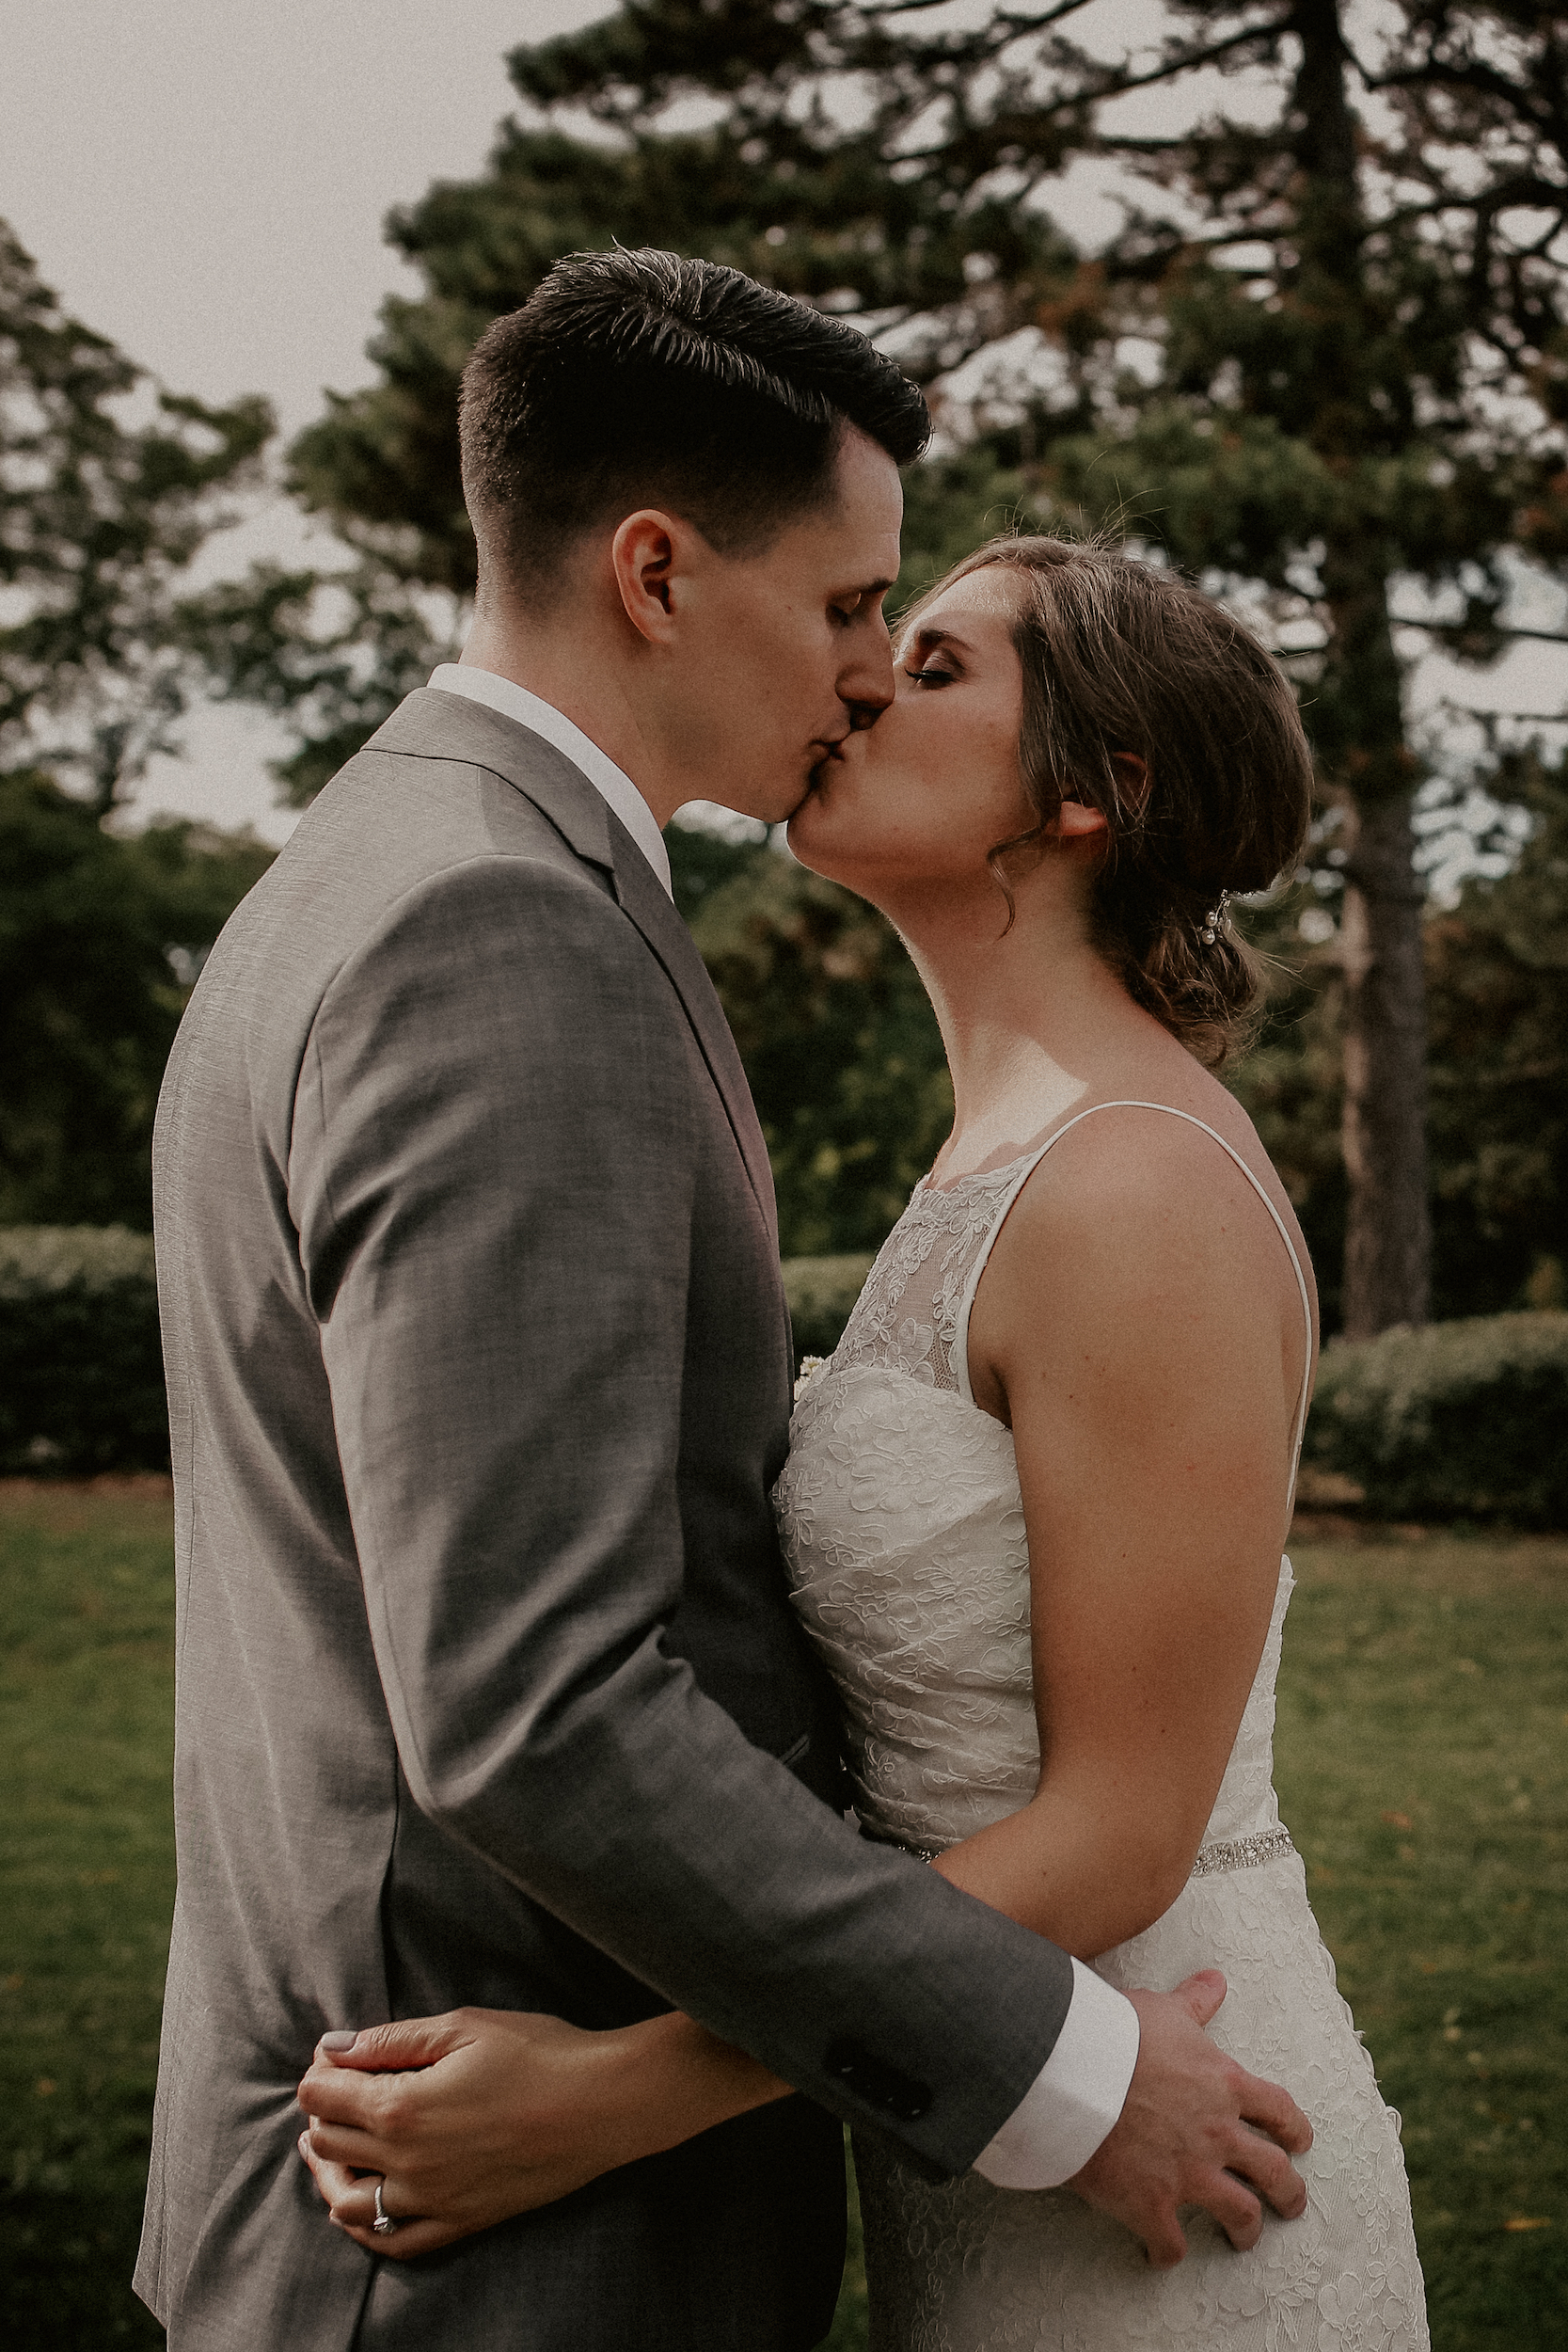 Karen + Eric - Wedding - Meaghan photographed our wedding in September 2018 and we couldn't have been happier with the way she captured our day! We were aiming to have a low-key wedding with focus on the limited number of family/friends in attendance and the little details we planned to make our day special. After meeting with her just one time, Meaghan totally got our vision and delivered exactly what we were looking for. (It was awesome to get the photos back as she managed to capture things we didn't even notice in the whirlwind of the day!)My husband and I were really nervous about looking too staged and awkward in our photos. Meaghan has this uncanny ability to make you feel comfortable without needing to say or really do much of anything. She has a very laid-back approach that almost made me wonder if she got any good shots. But when we got our sneak peaks and the full electronic album, we were blown away! She has a great eye for the perfect shot and balances very well between posed shots and candid moments. Meaghan captured memories we will cherish forever! If you're looking for a reasonably priced photographer to capture your day beautifully, look no further - Meaghan is your girl!